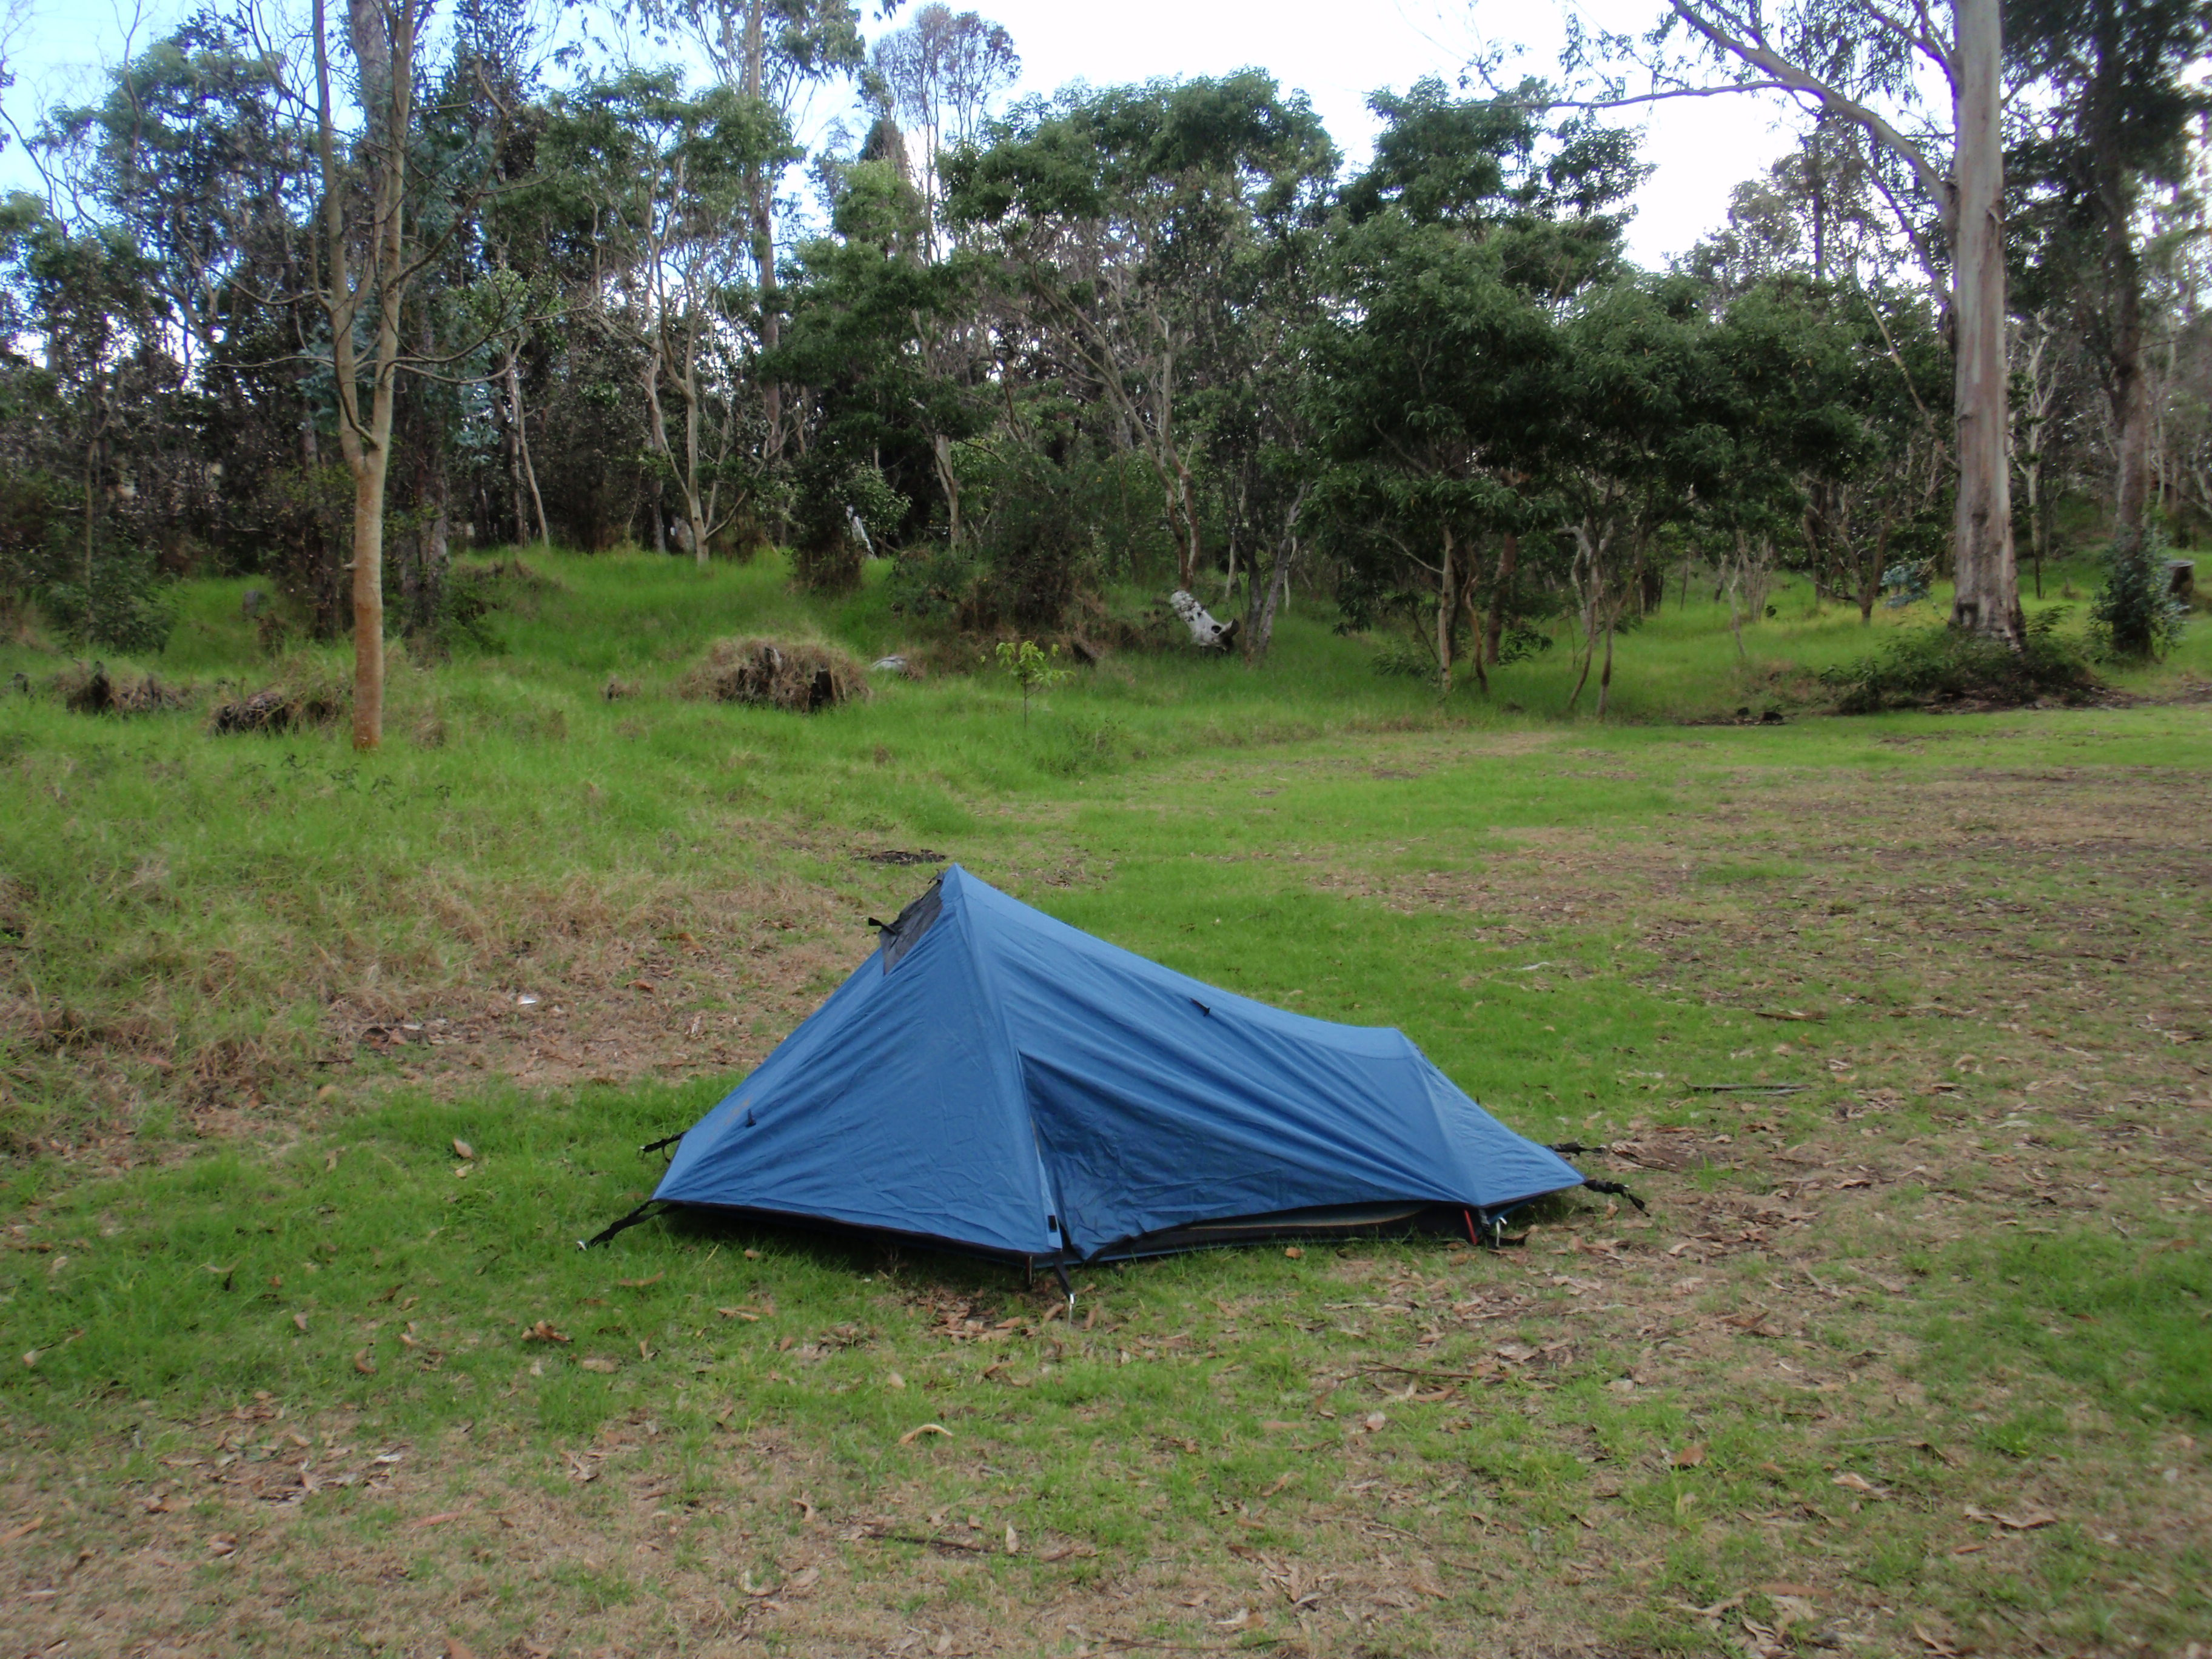 Camped at Volanoes NP